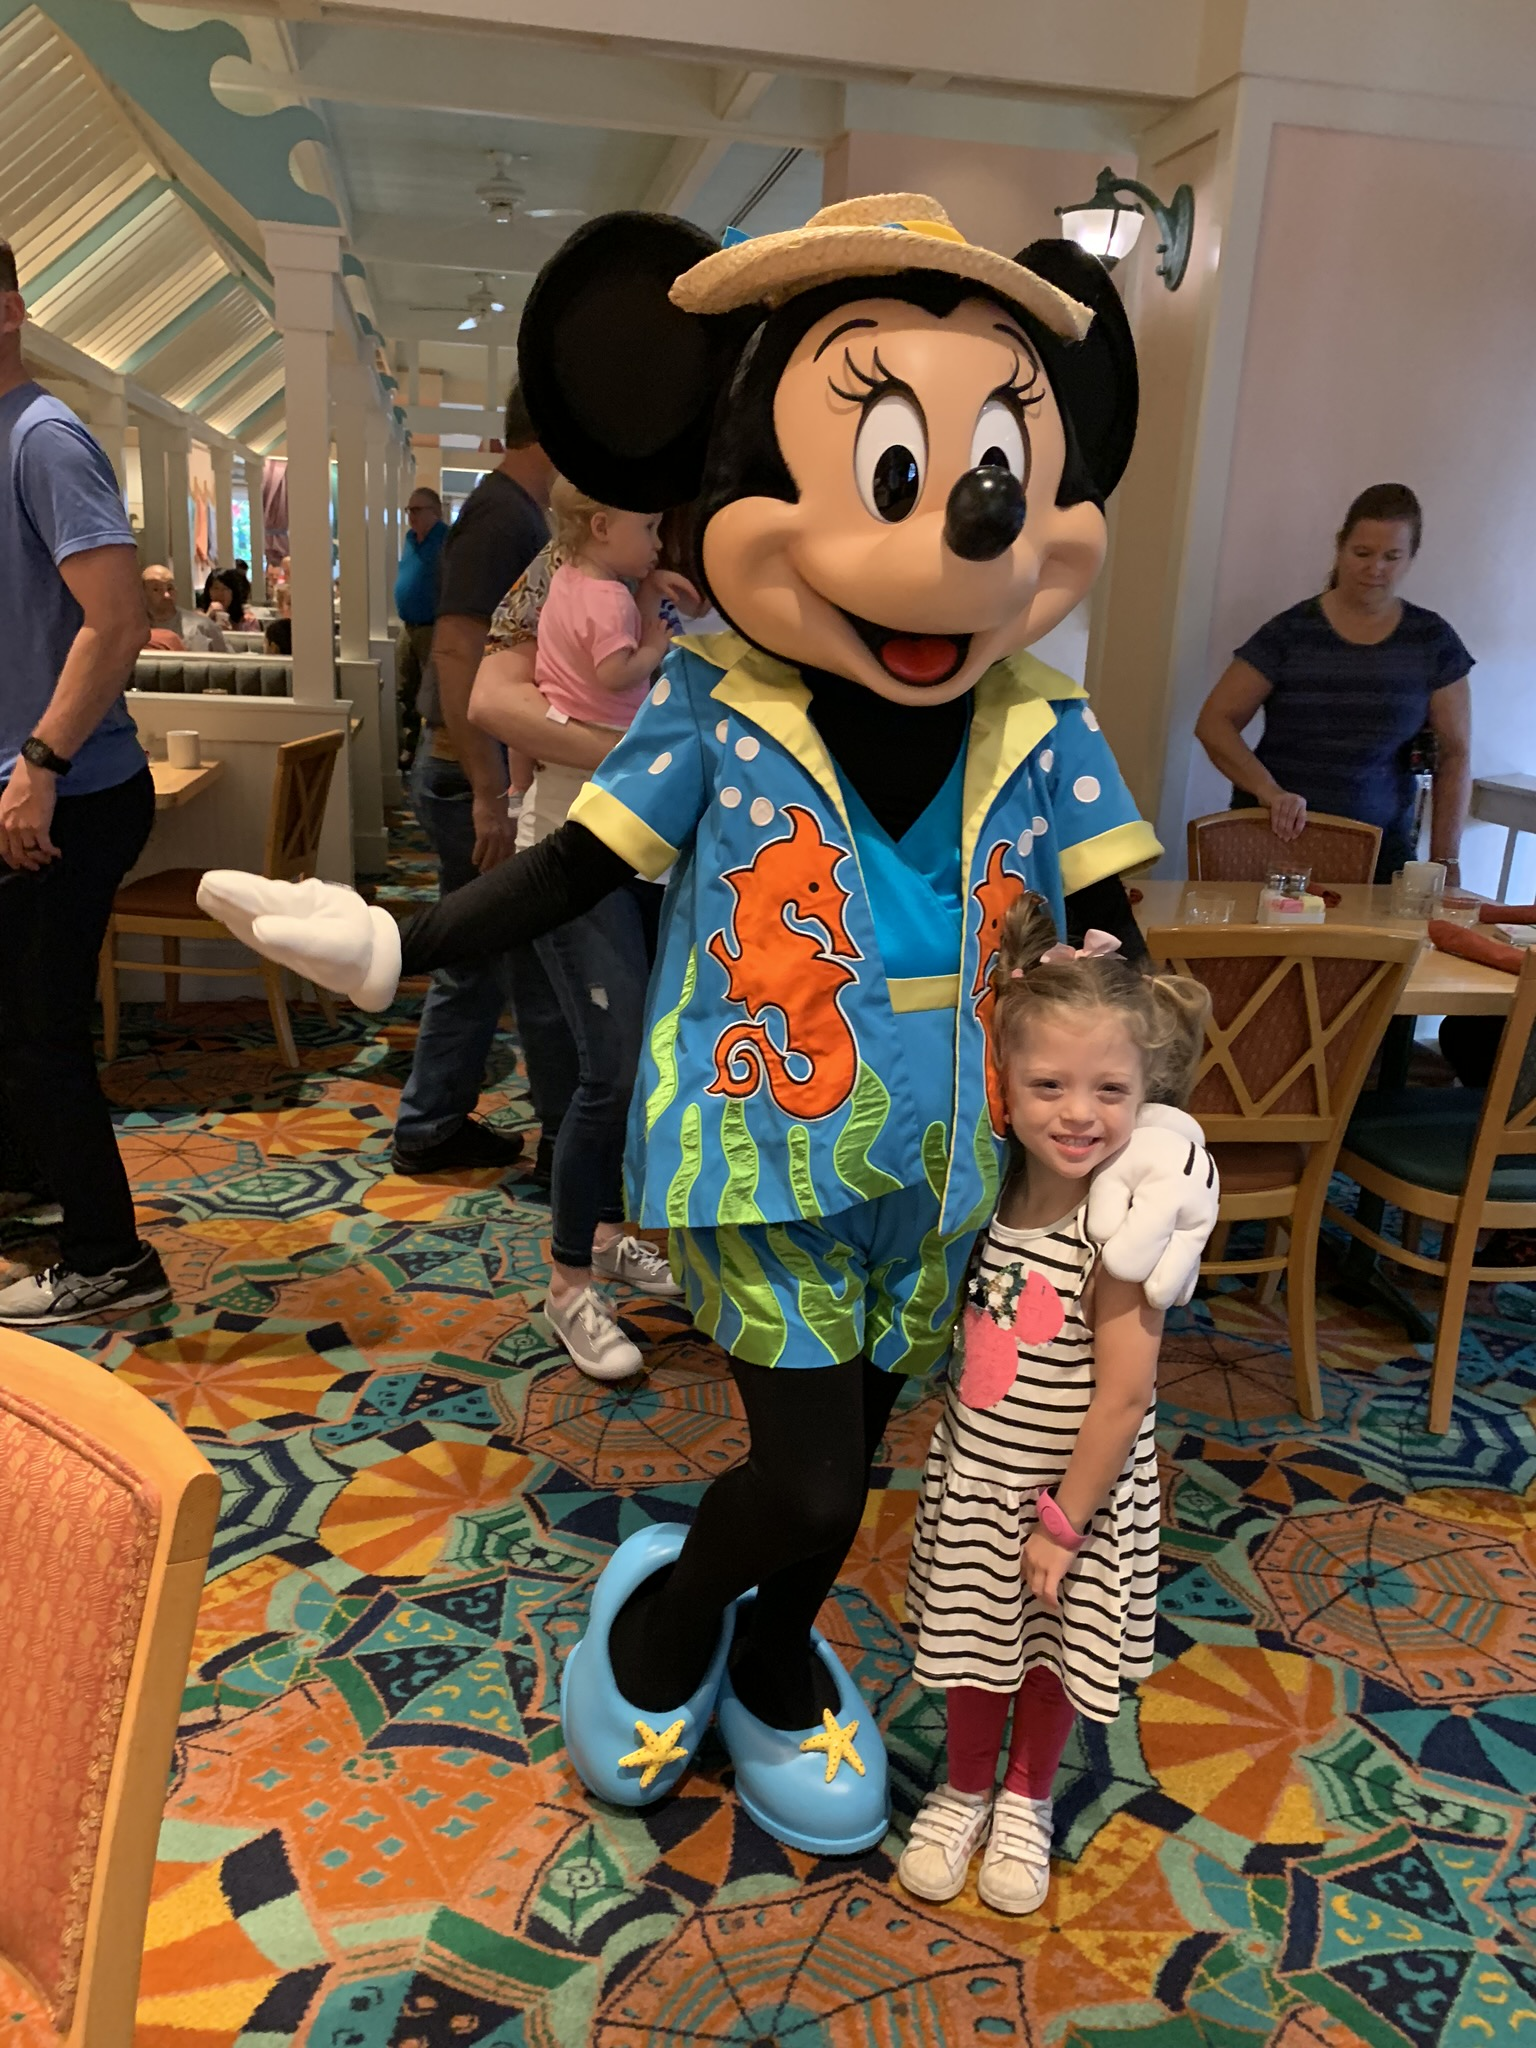 """MINNIE!!! Before the trip, we told Lucie that we would write Lucie a letter to ask if we could go to Disney for Lucie's birthday and then opened a gift from """"Minnie"""" with a card and the magic bands, so it was really fun for them to get to tell Minnie that story with Lucie."""